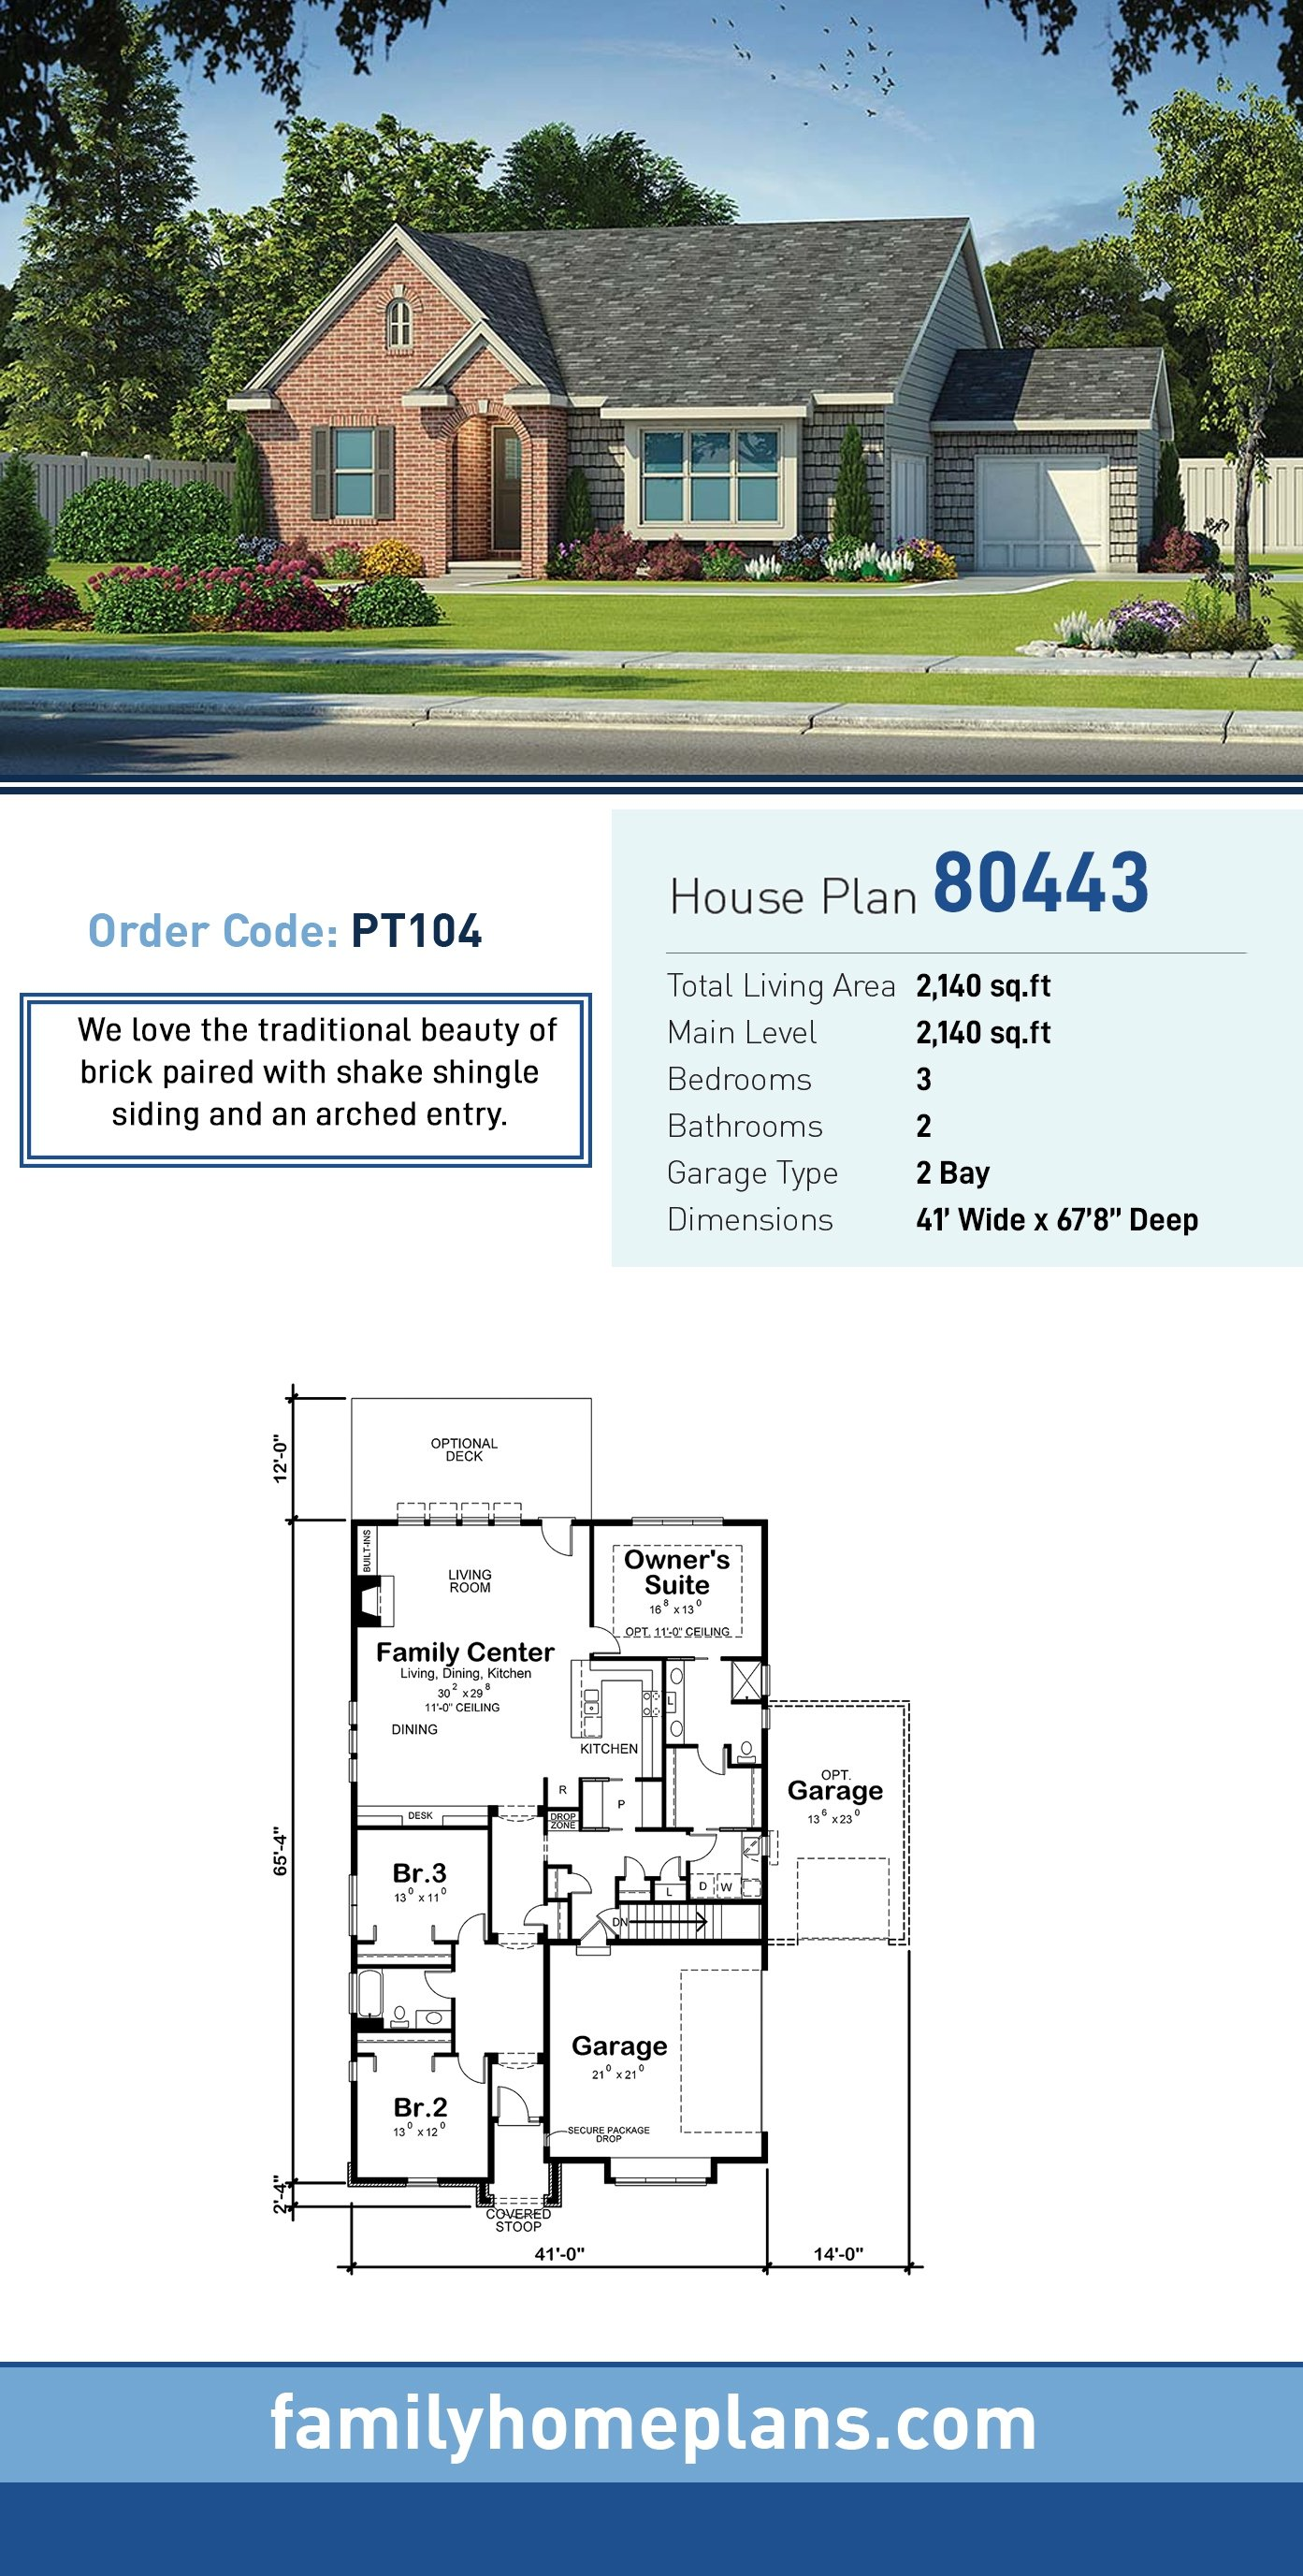 Craftsman, Traditional House Plan 80443 with 3 Beds, 2 Baths, 2 Car Garage